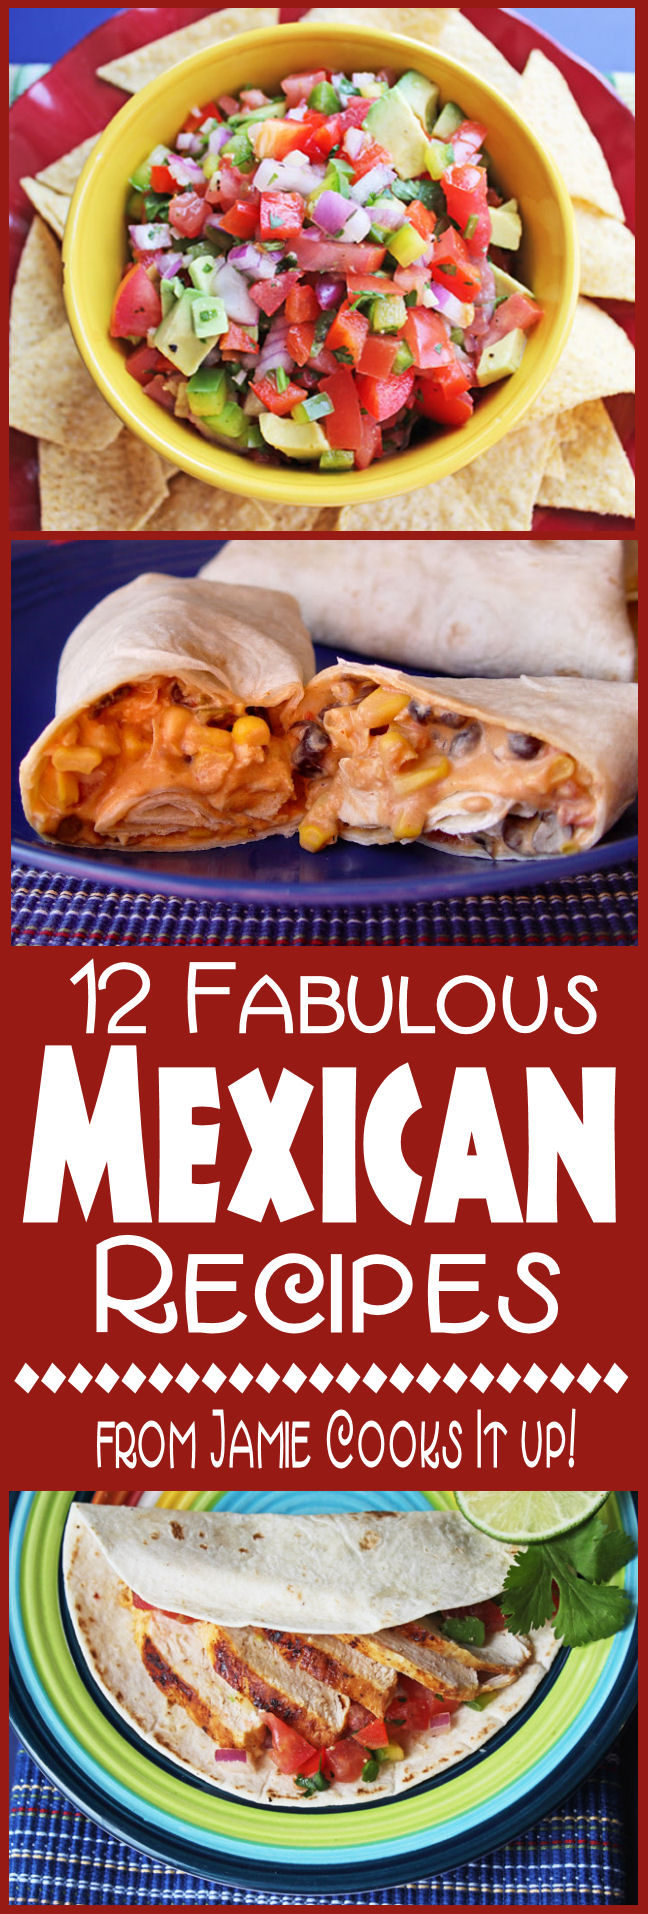 12 Fabulous Mexican Recipes